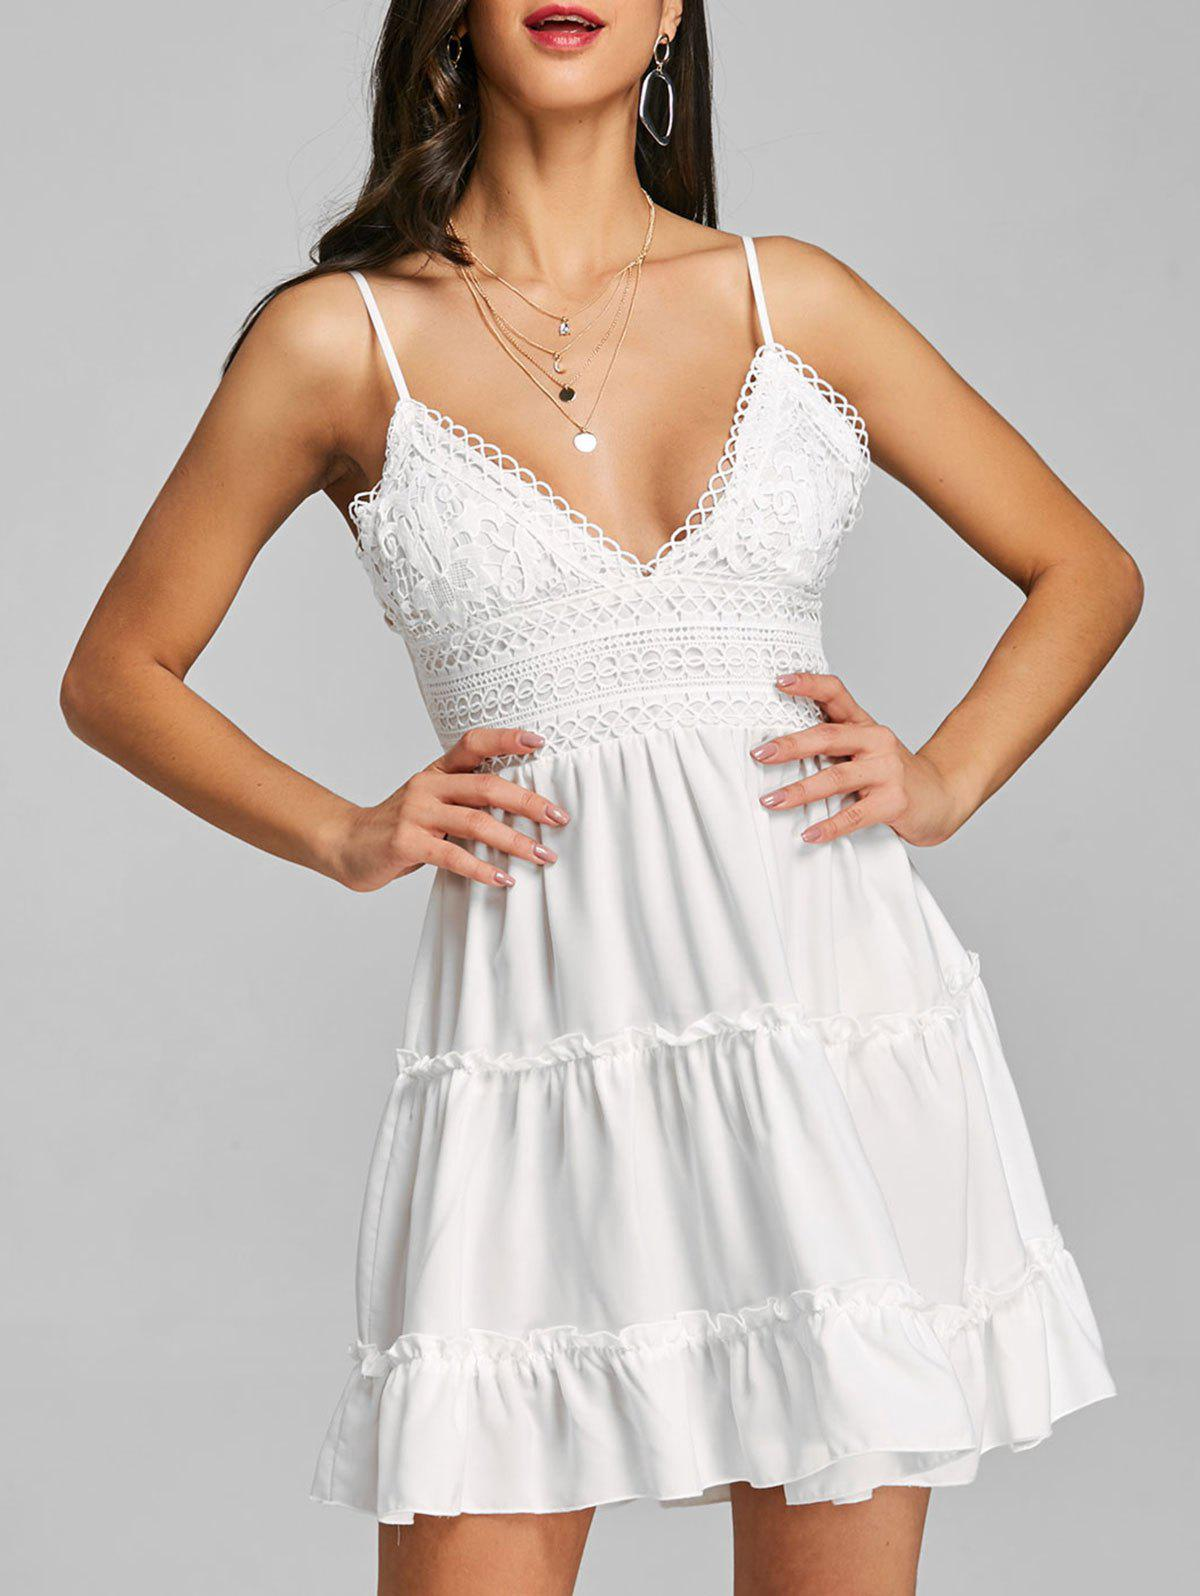 Lace Bow Spaghetti Strap Swing Dress - WHITE L